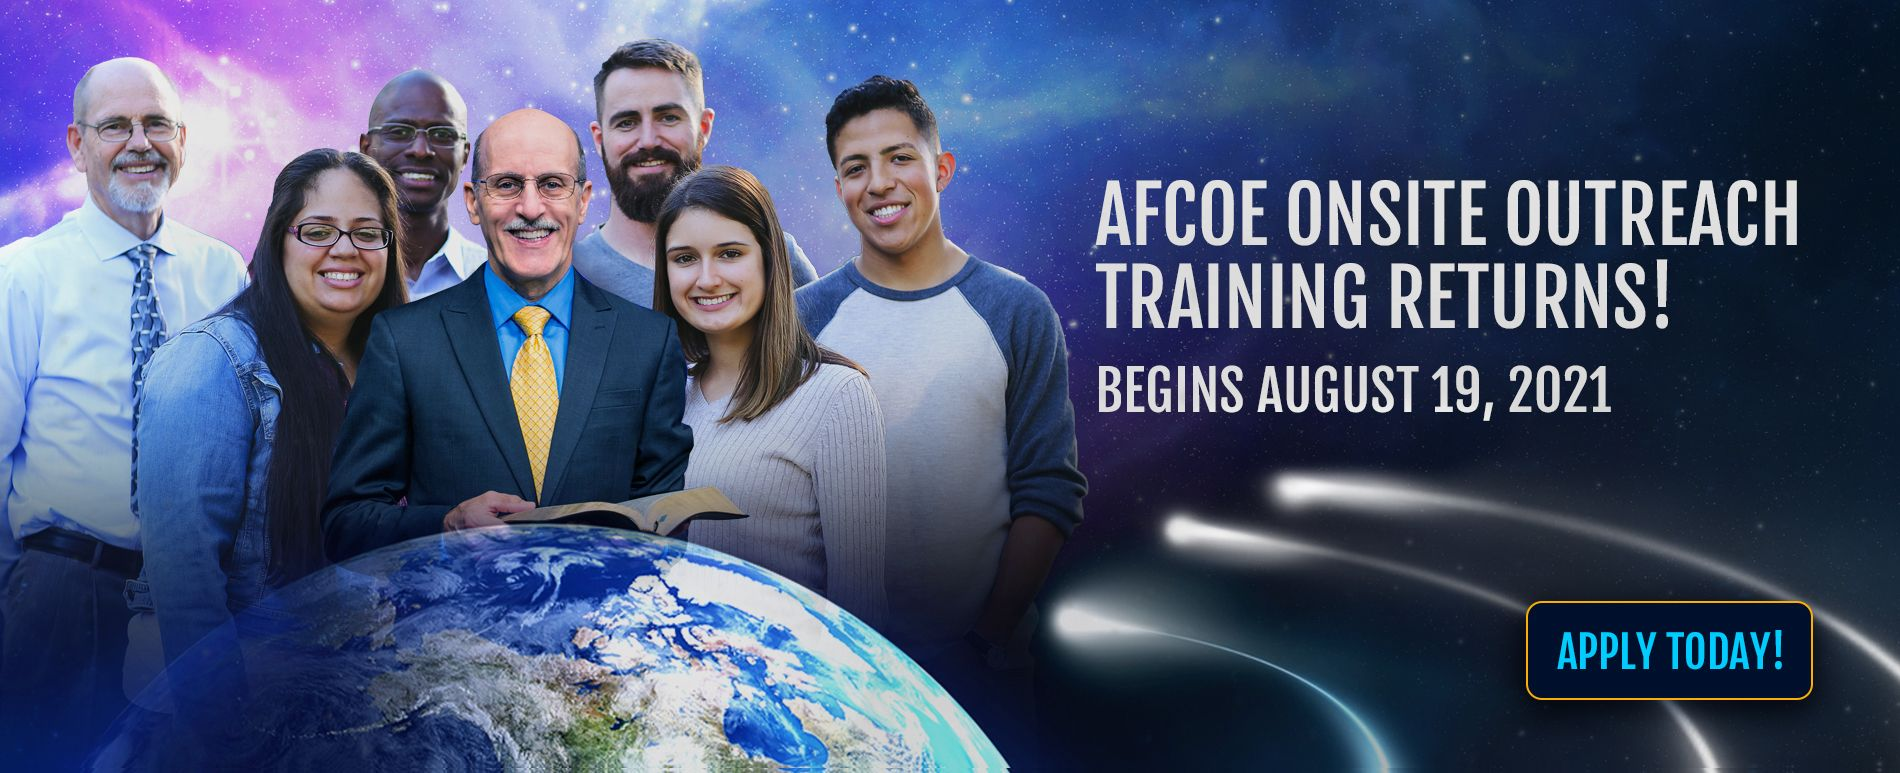 Apply for AFCOE